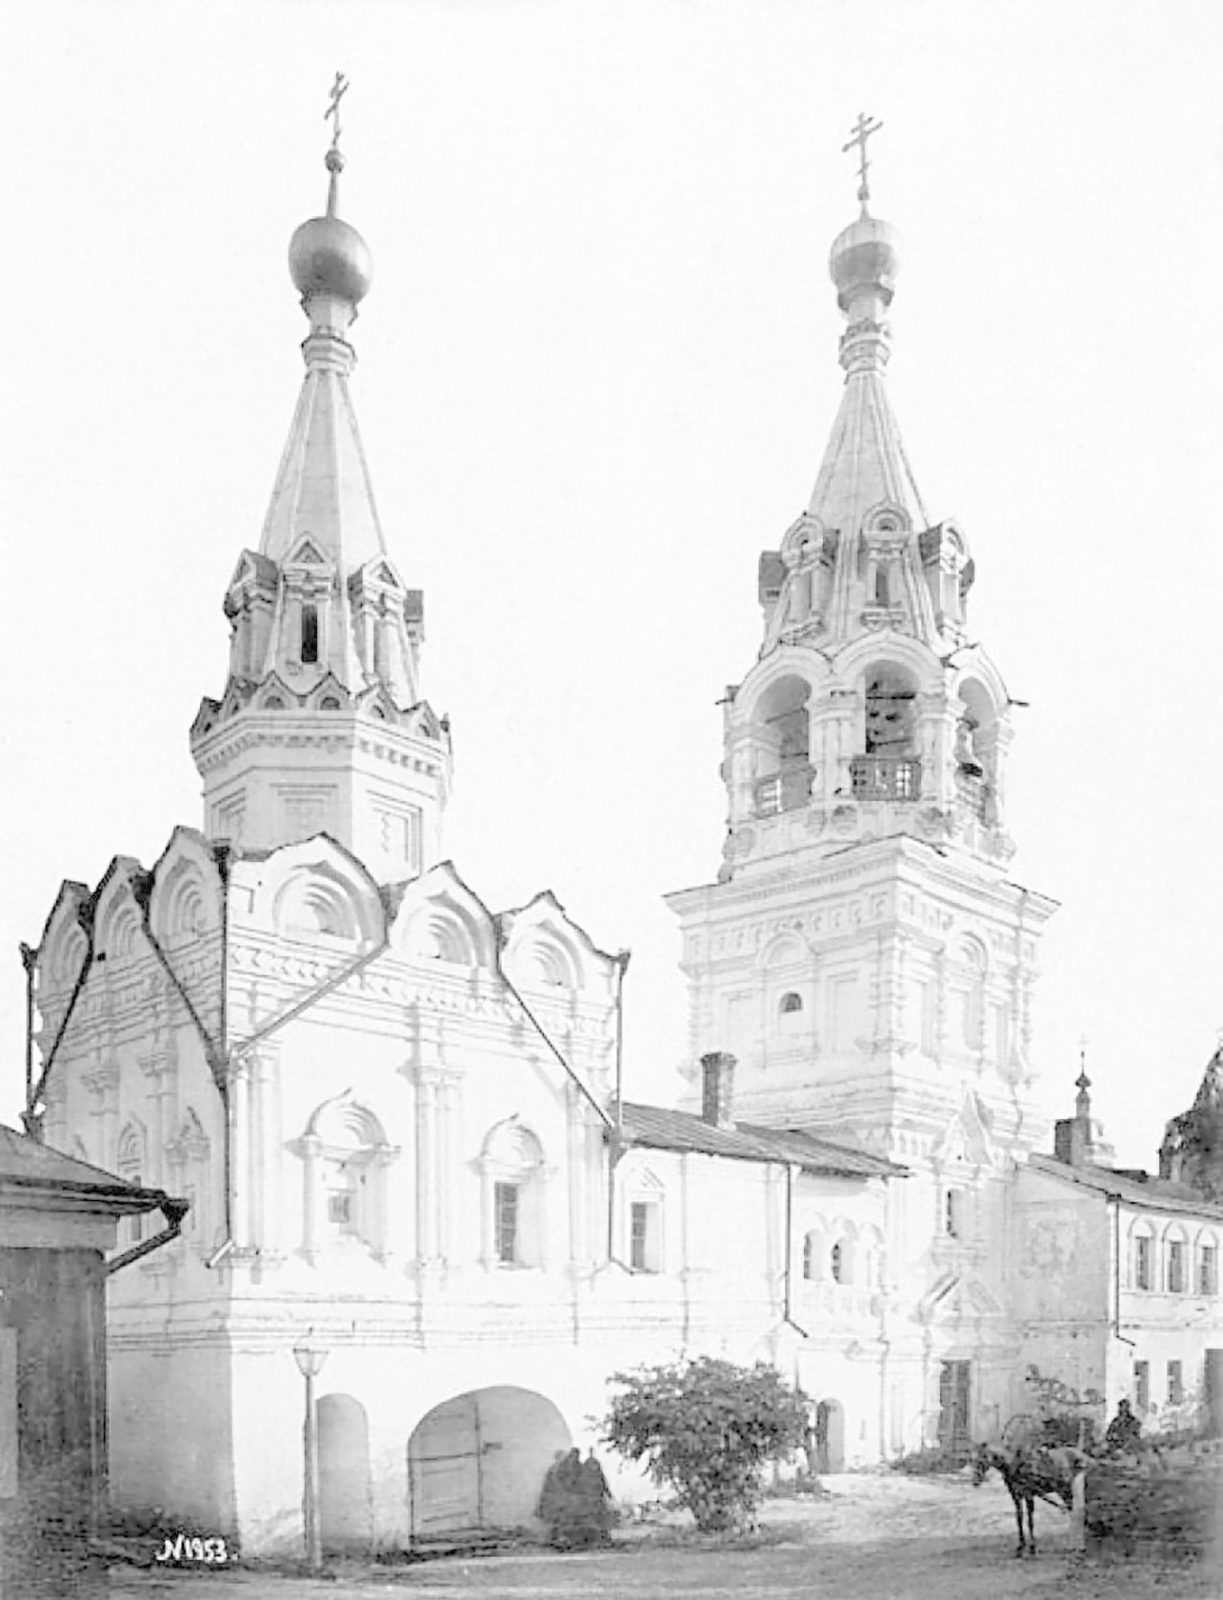 The Holy Trinity convent, Murom, Vladimir Province, Russia, 1900s